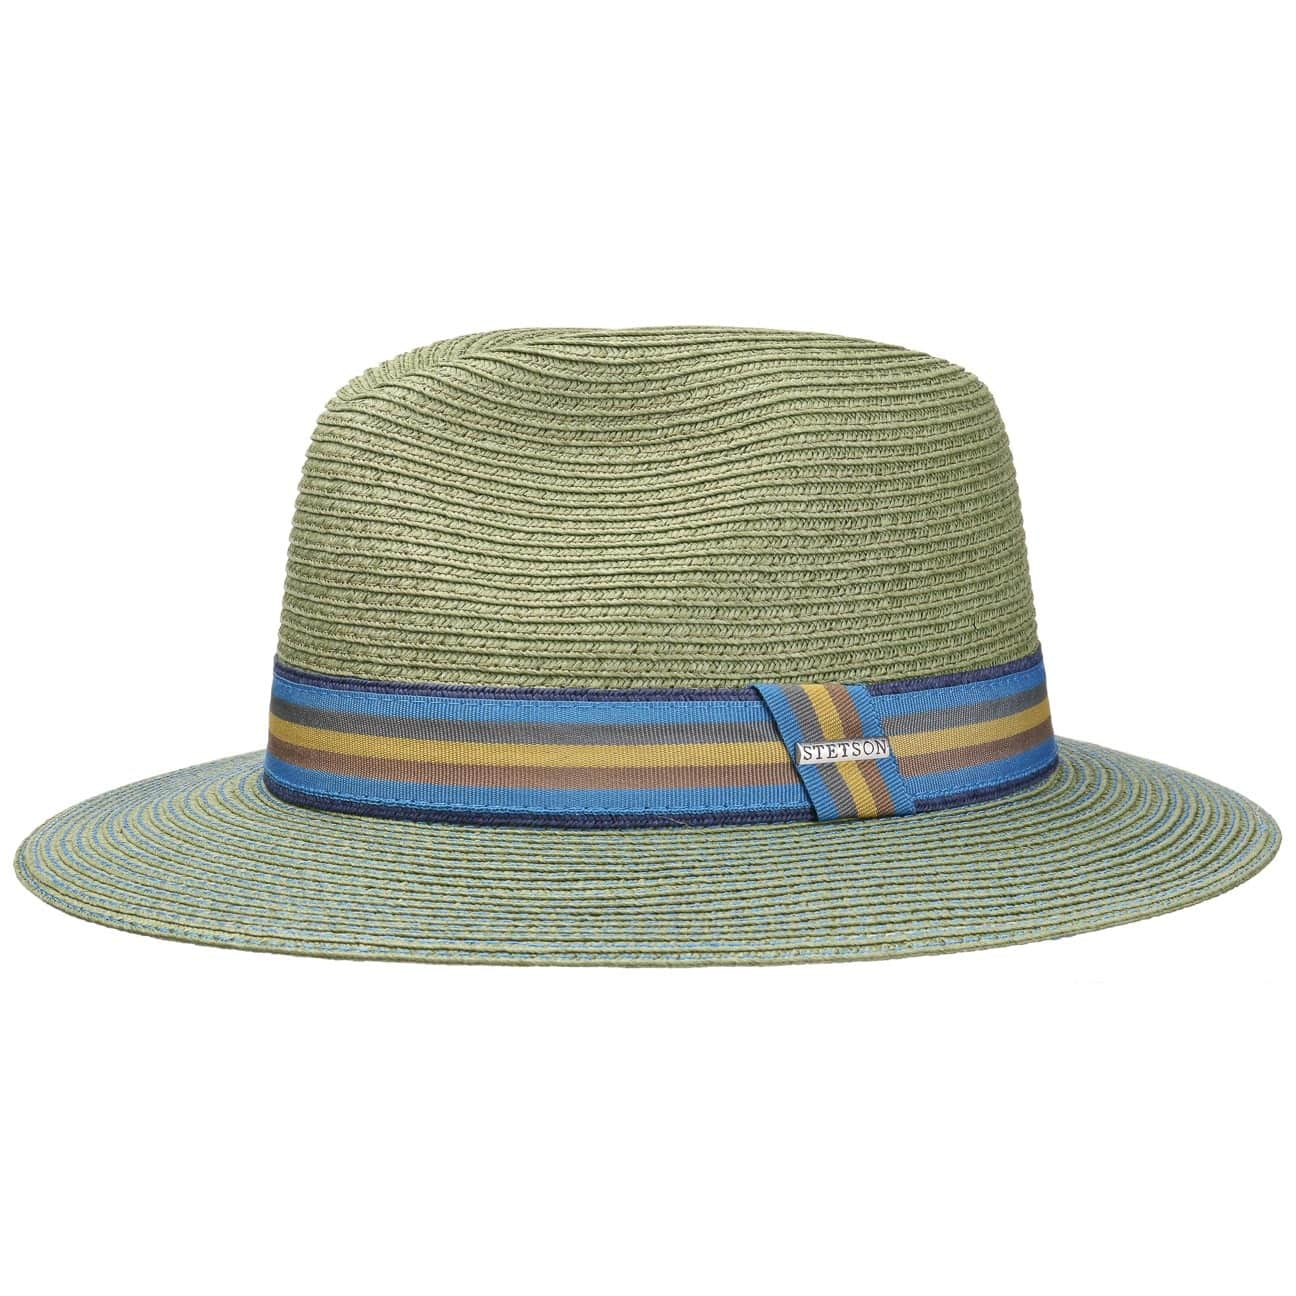 Monticello Toyo Traveller Hat by Stetson  straw hat